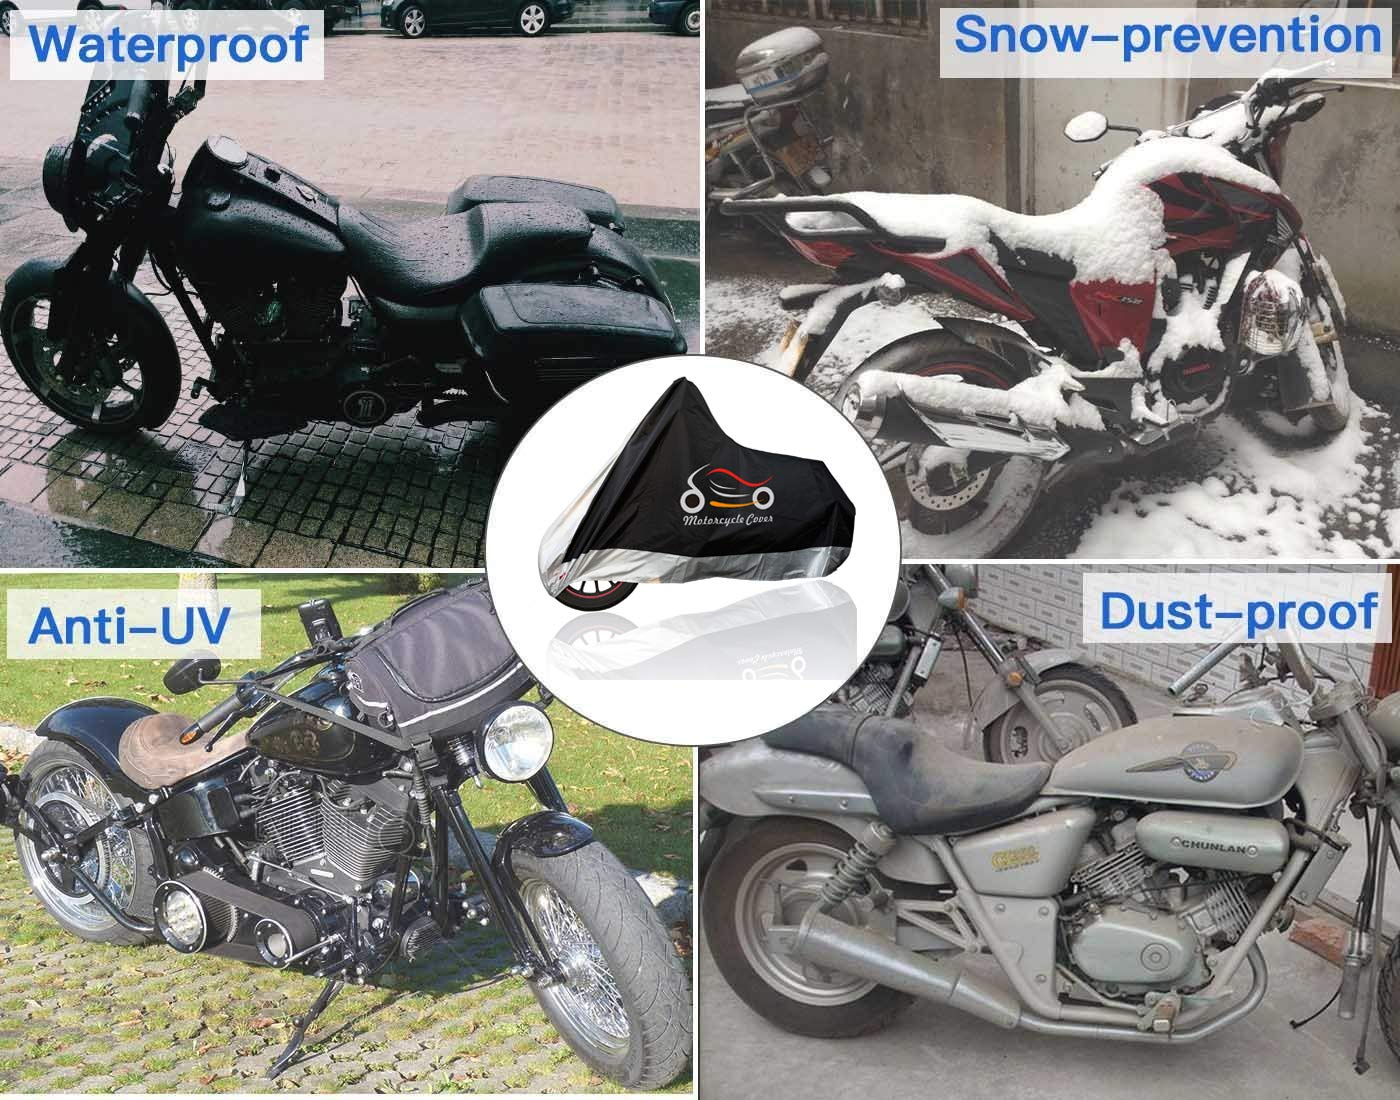 Durable 420D Oxford Fabric Harley etc Suzuki Yamaha All Weather Indoor Outdoor Protection Waterproof Motorcycle Cover Upgraded Fits up to 108 Motors include Honda